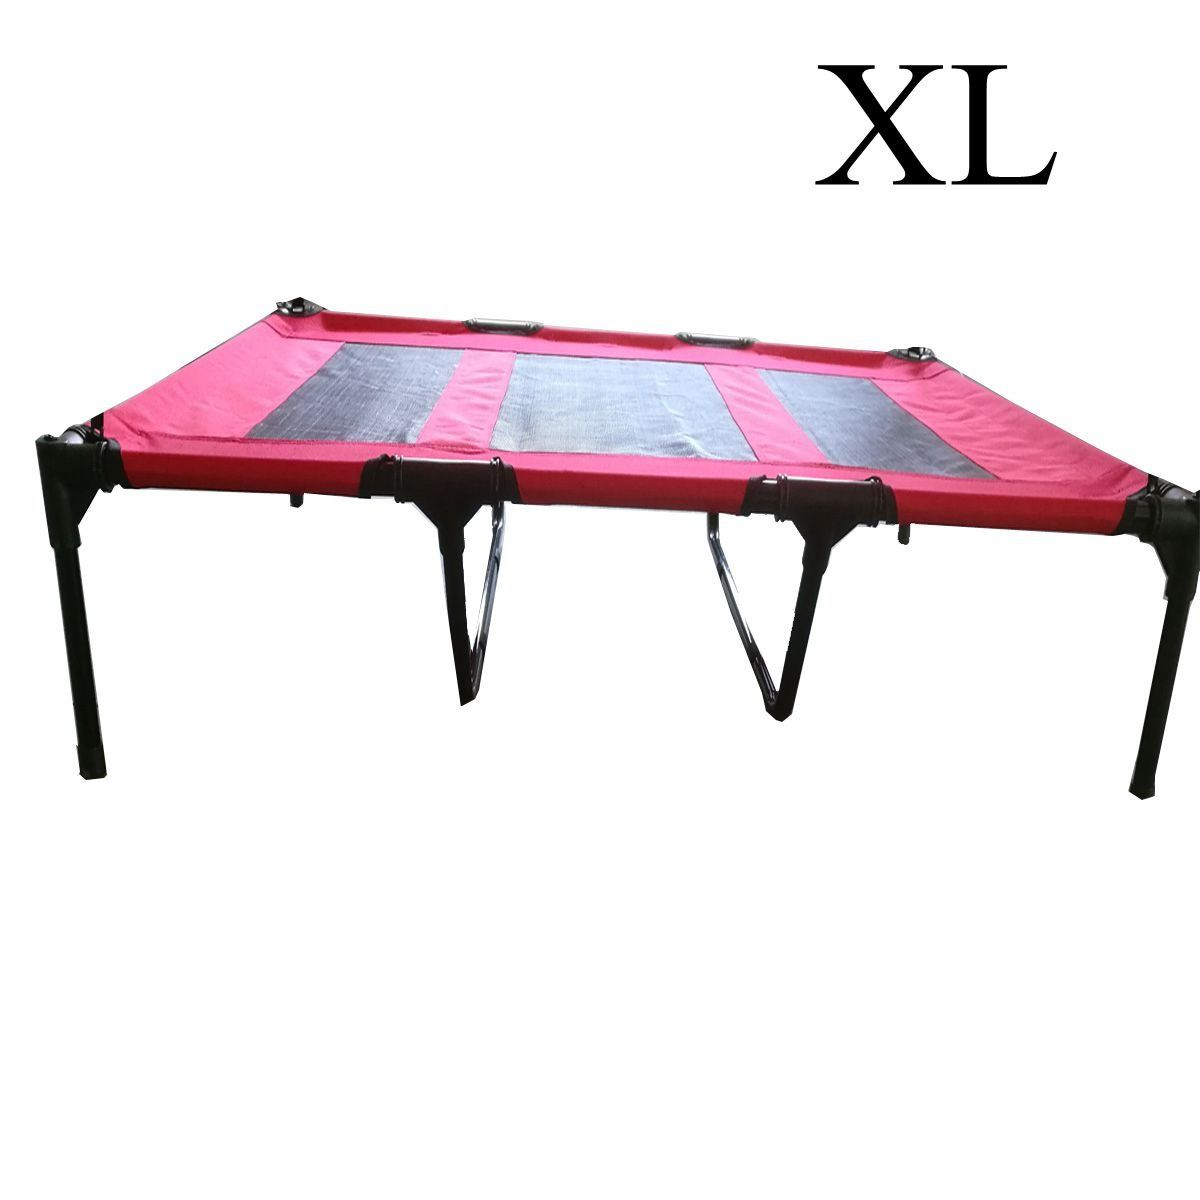 Janmo Pet Portable Bed Dog Foldable Indoor And Outdoor Cot Tent Canopy Shelter Xl 48 Inch Red Be Sure To Check Out Dog Bed Furniture Dog Bed Dog Furniture